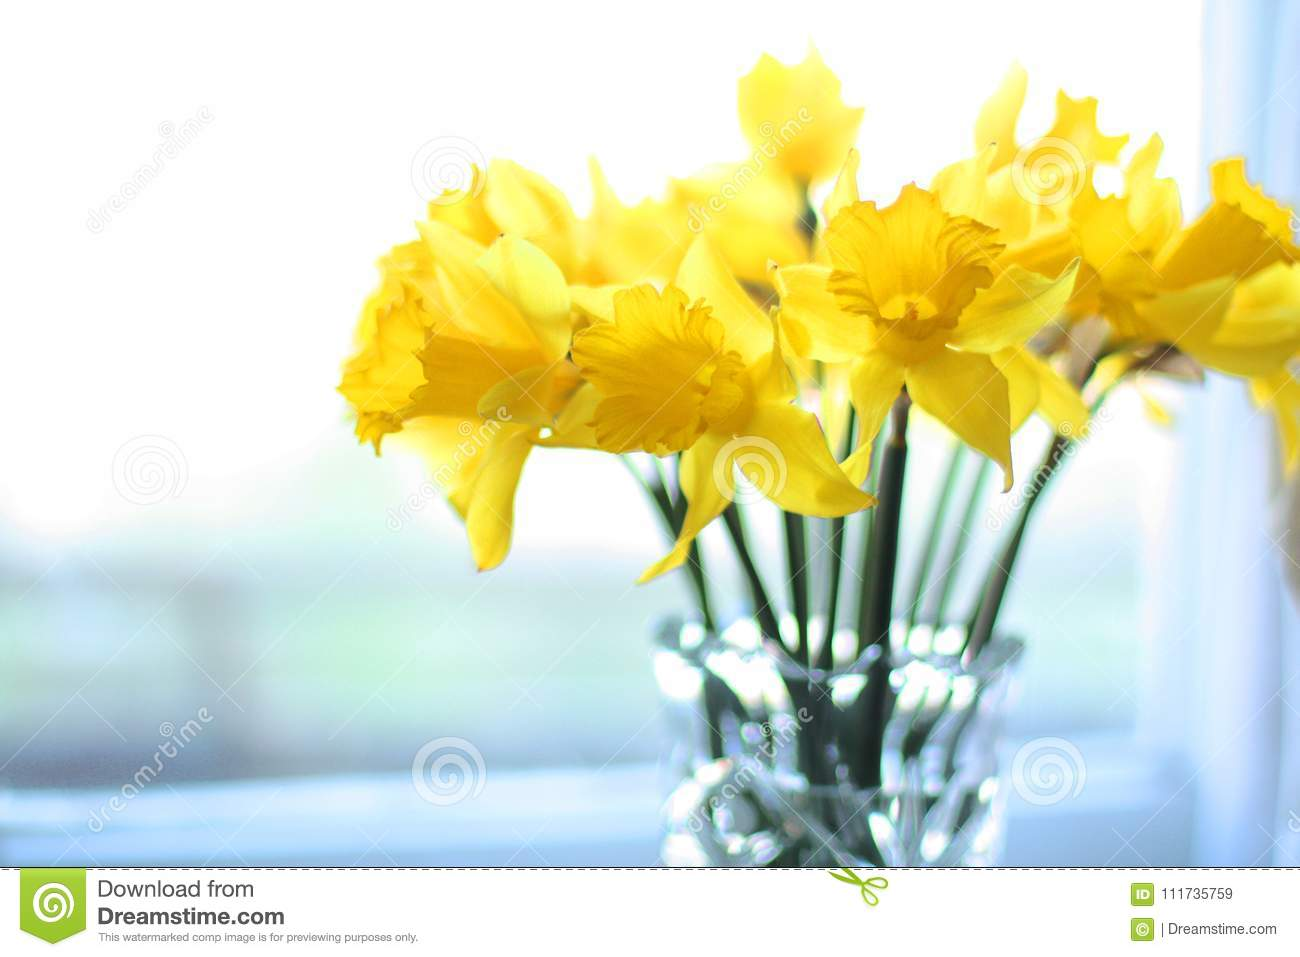 Spring yellow flowers daffodils sunny romantic present stock image download spring yellow flowers daffodils sunny romantic present stock image image of flowers present mightylinksfo